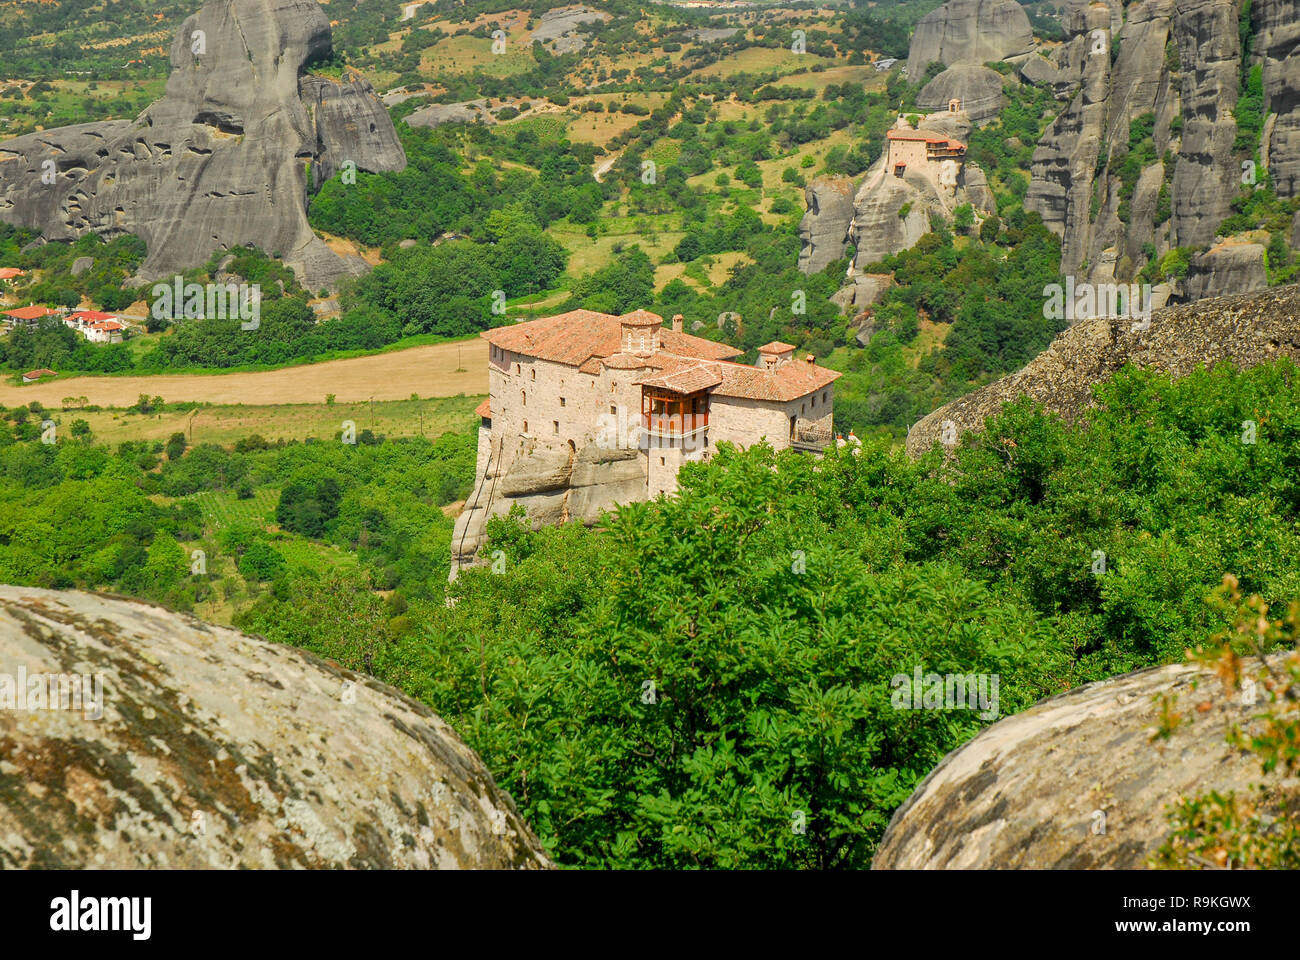 Spectacular Meteora rock formations and monasteries, Meteora, Plain of Thessaly, Greece - Stock Image